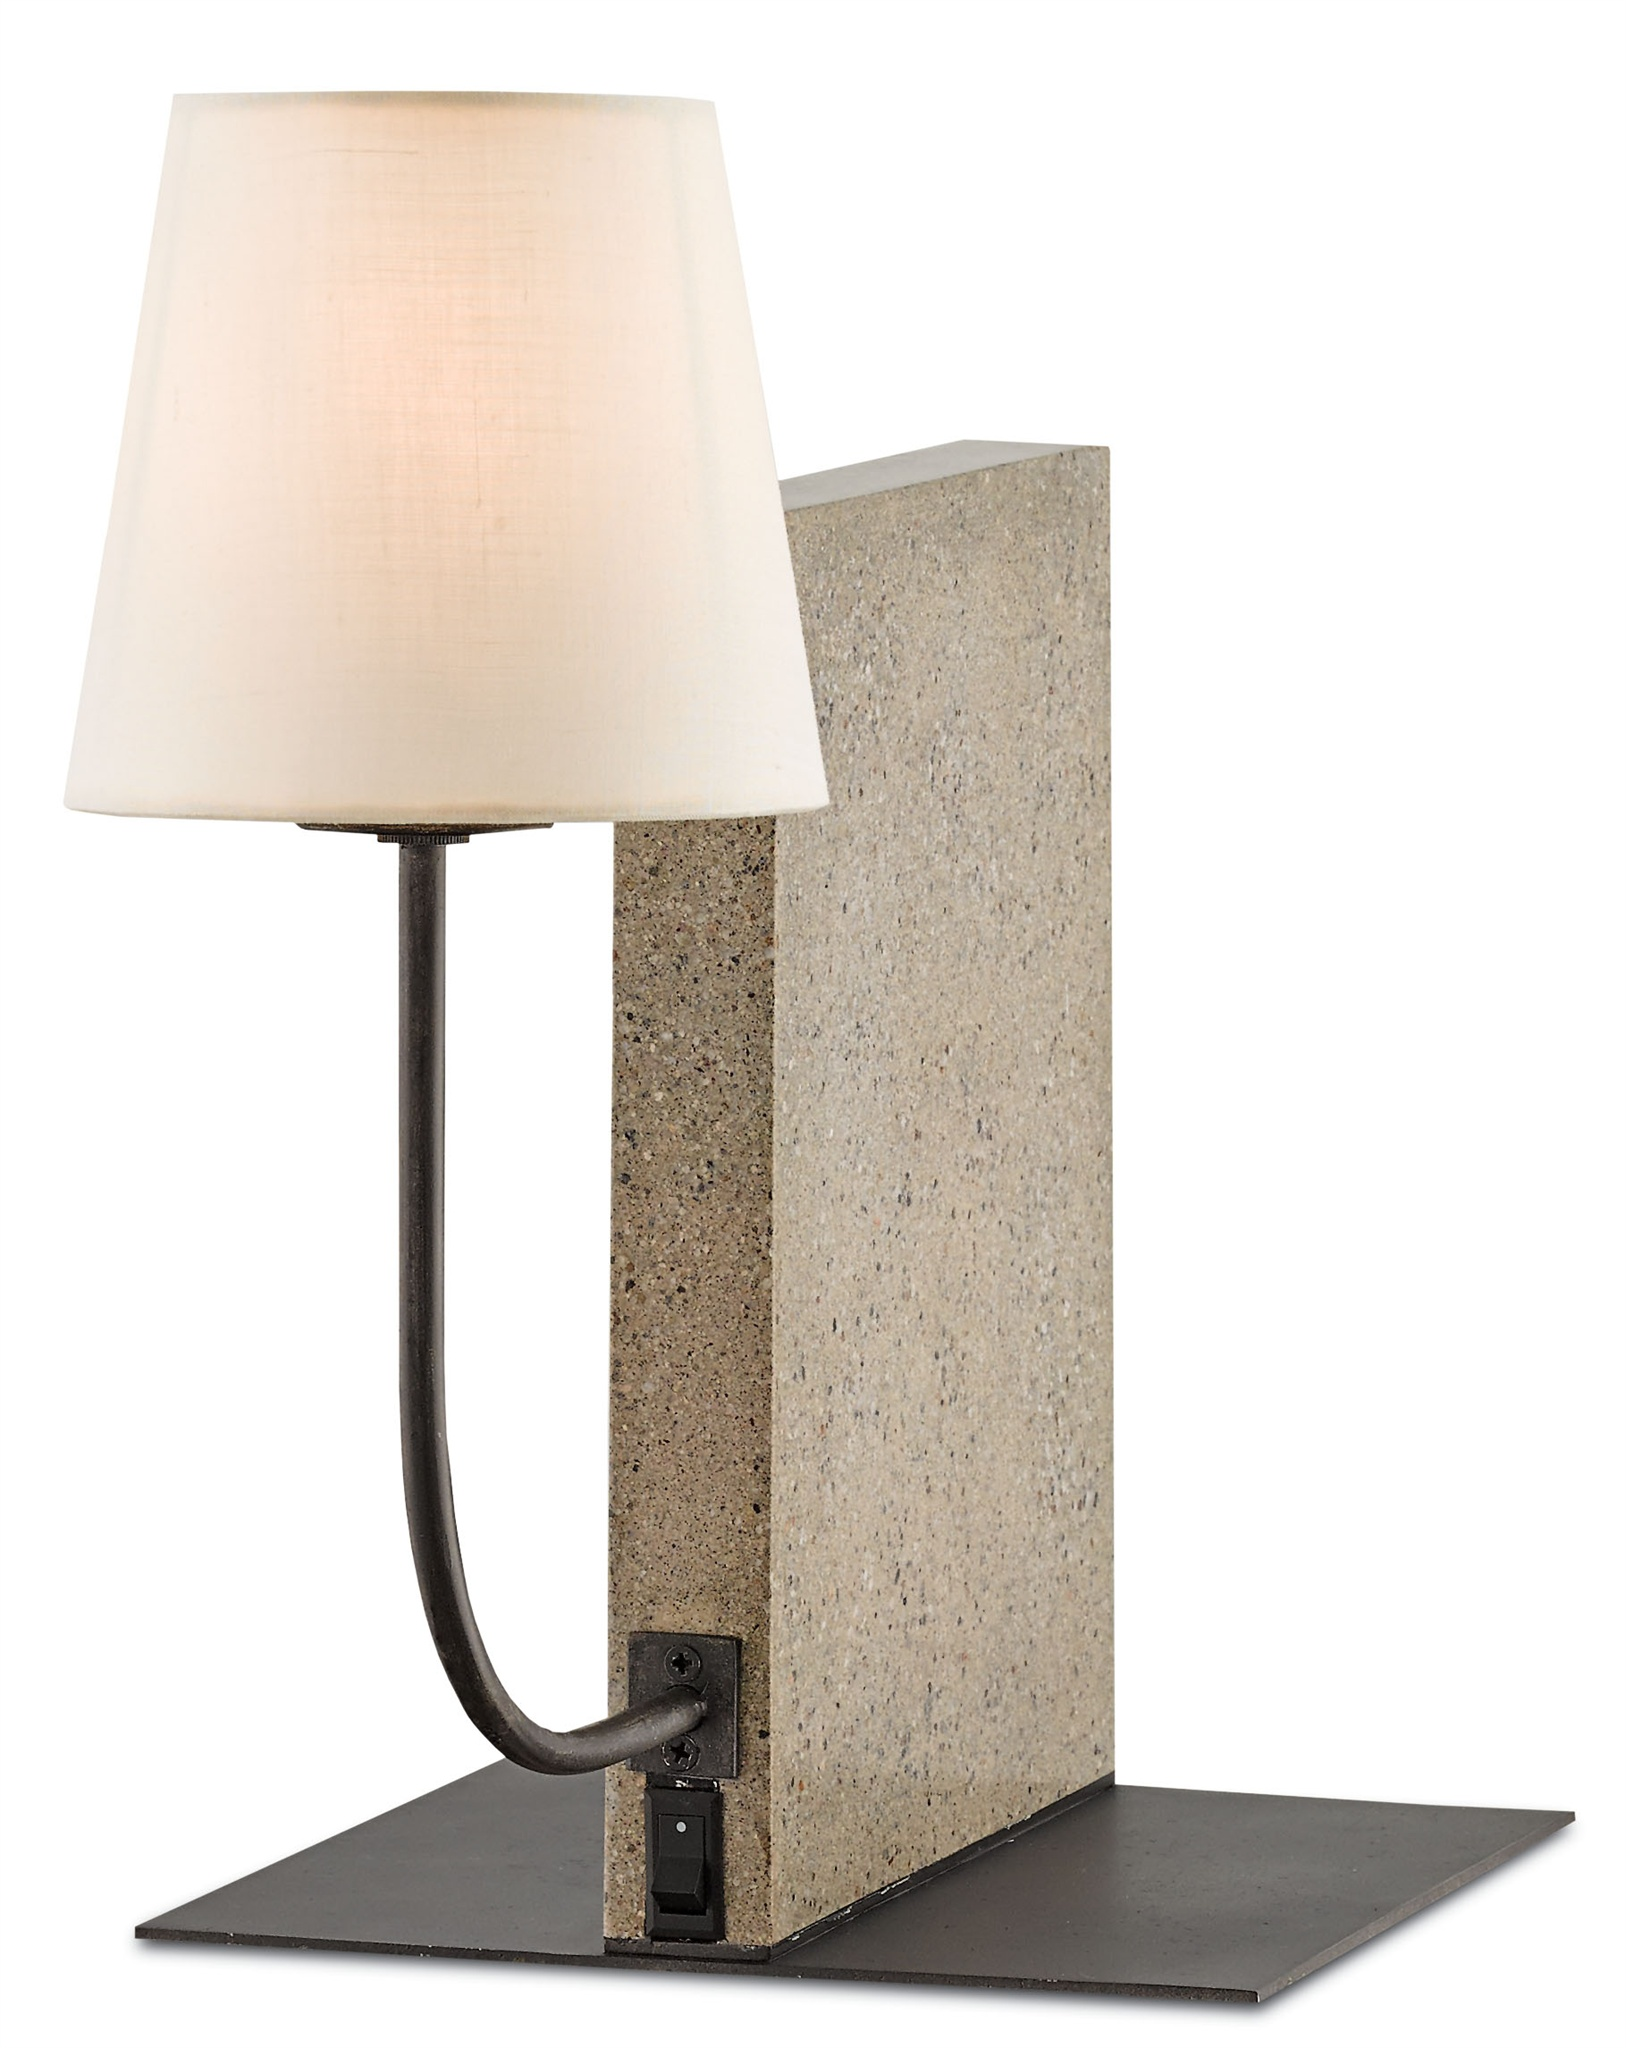 Oldknow Bookcase Table Lamp By Currey And Company